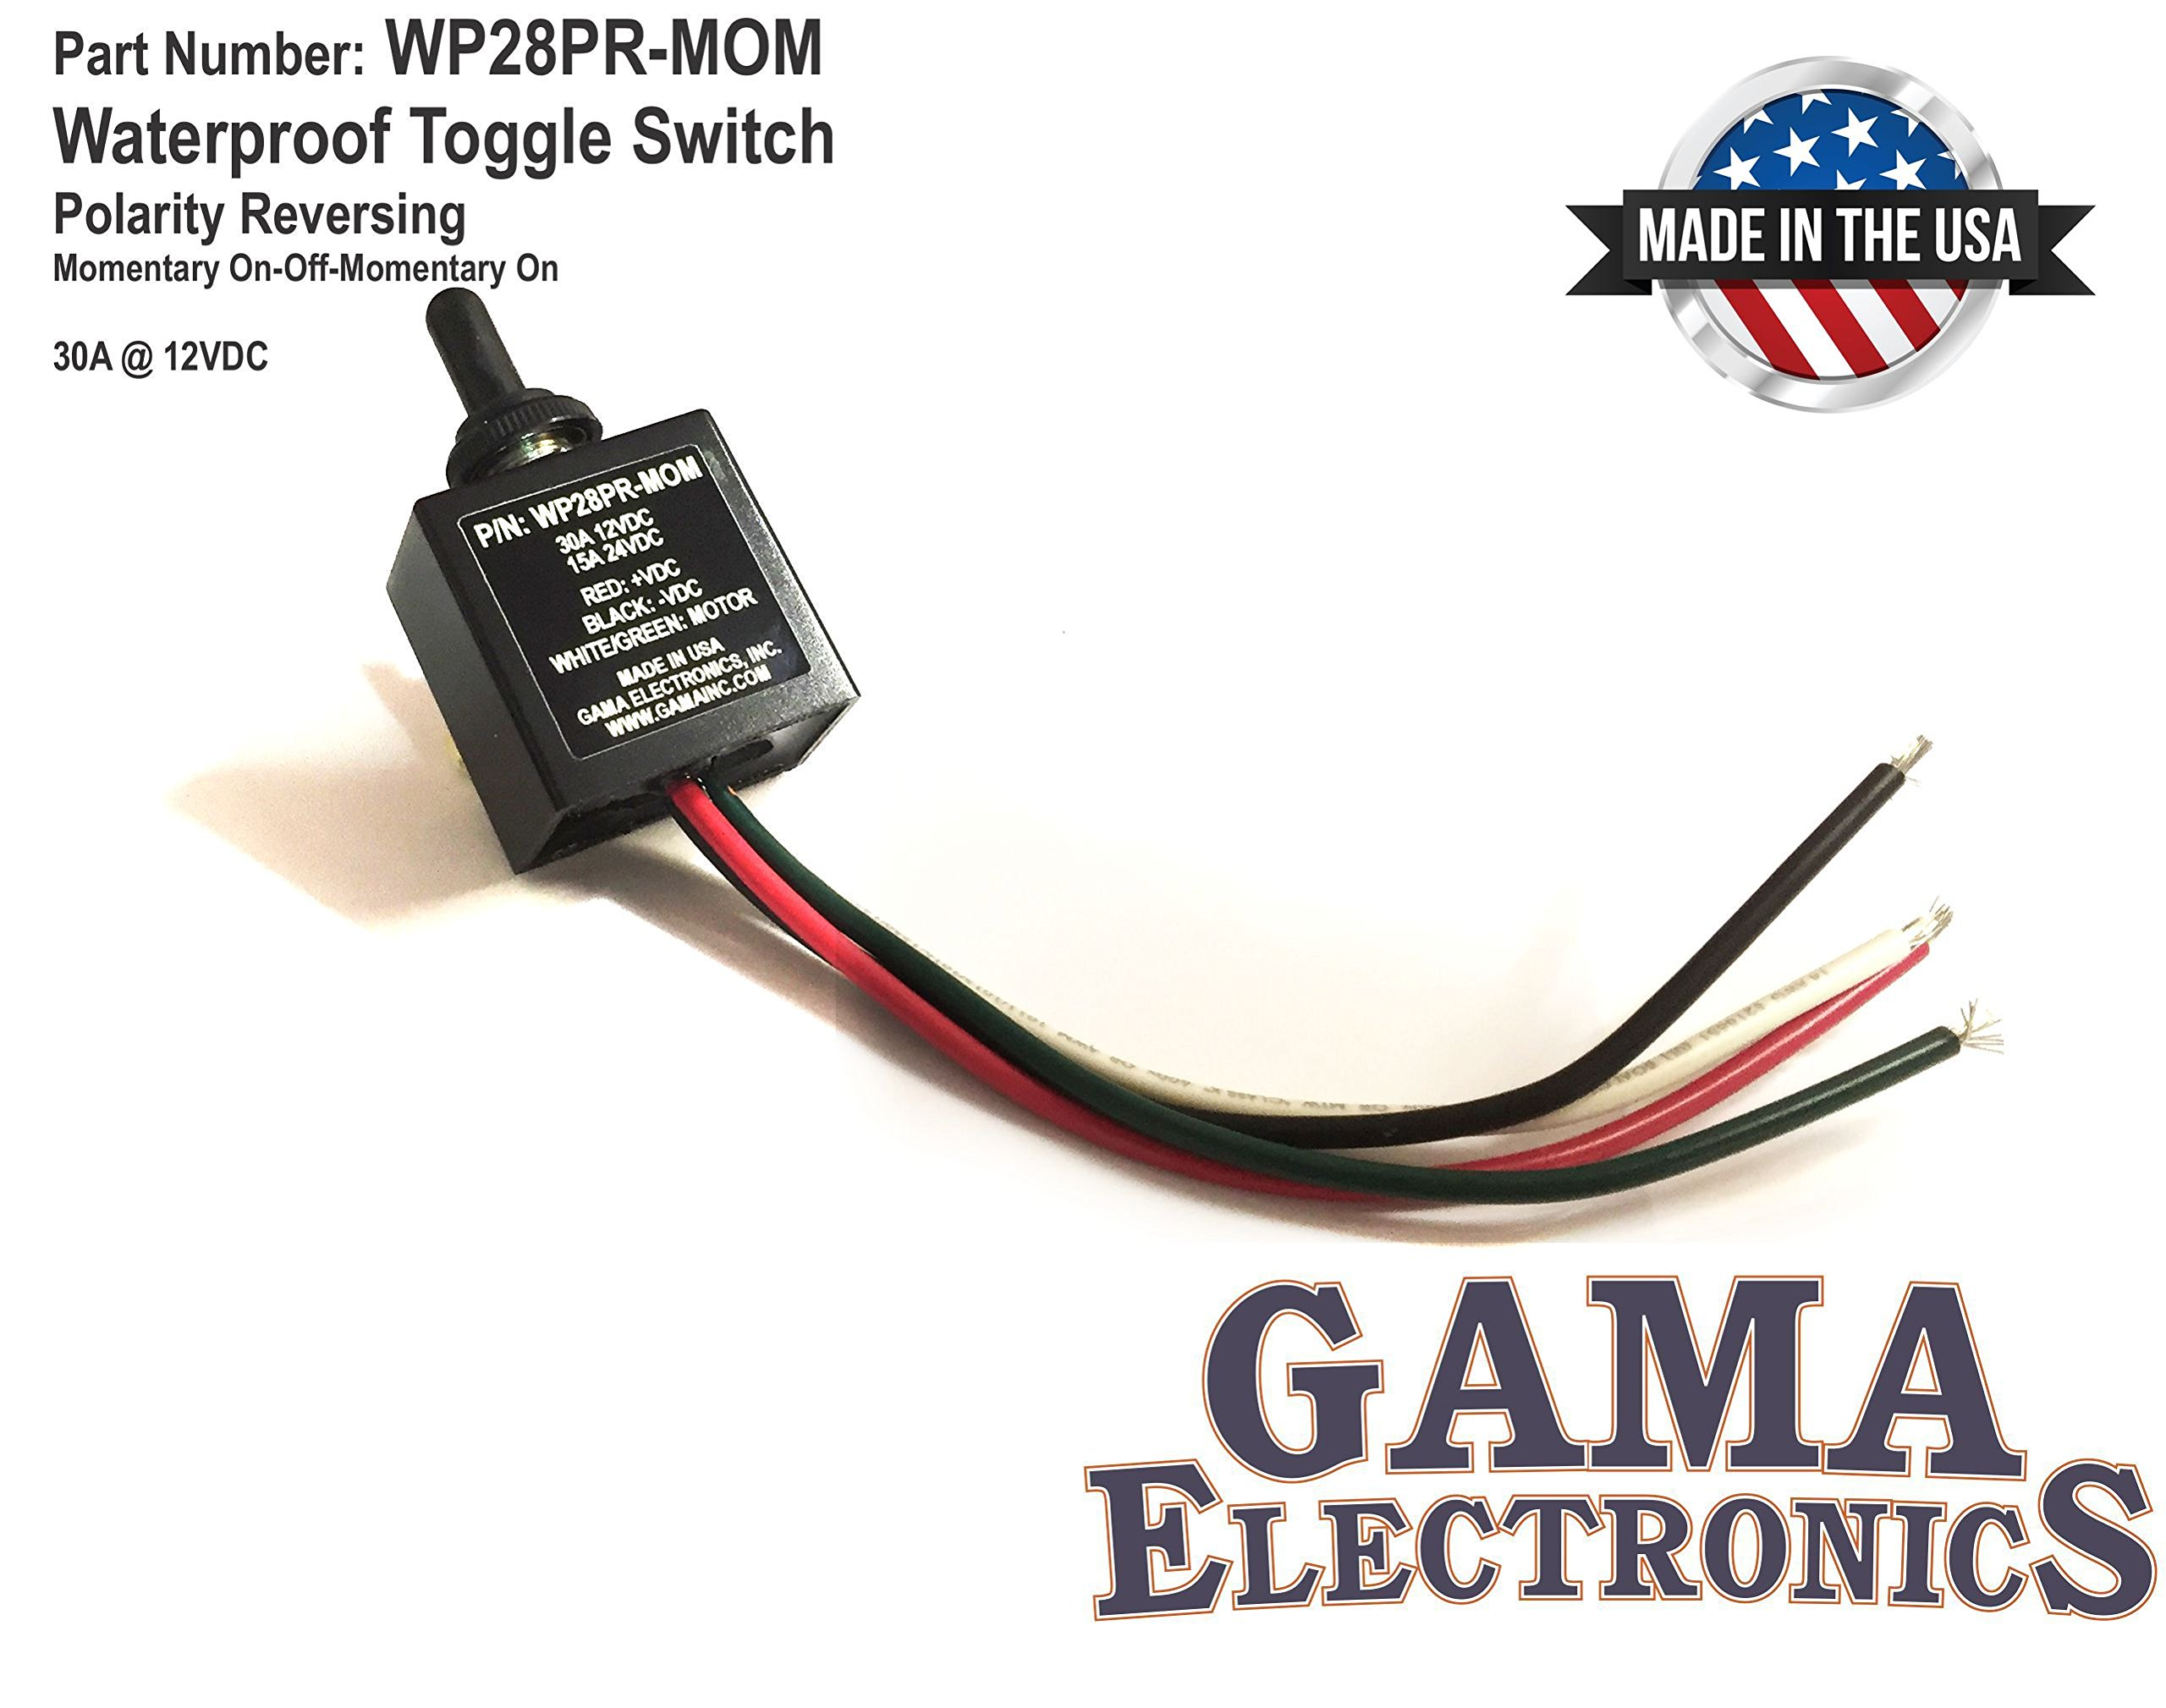 GAMA Electronics Waterproof 3 Position On-Off-On Toggle Switch Reverse Polarity DC Motor Control- Momentary